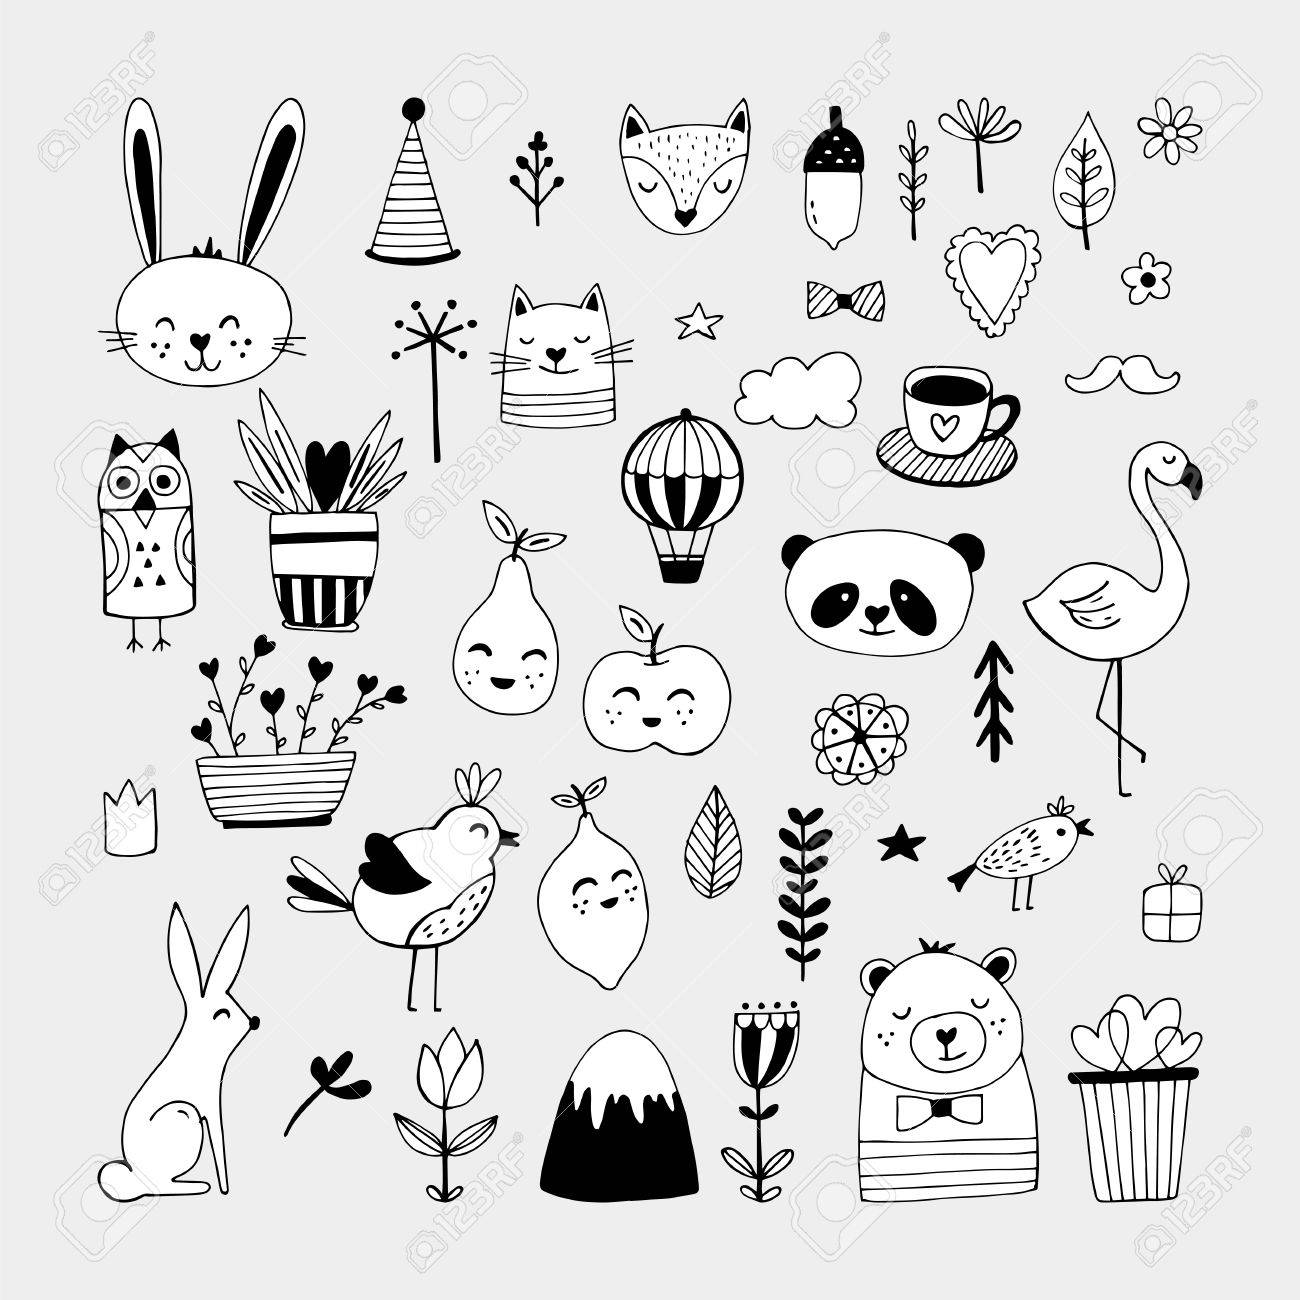 Modern cute animals and nature elemets black and white hand drawn